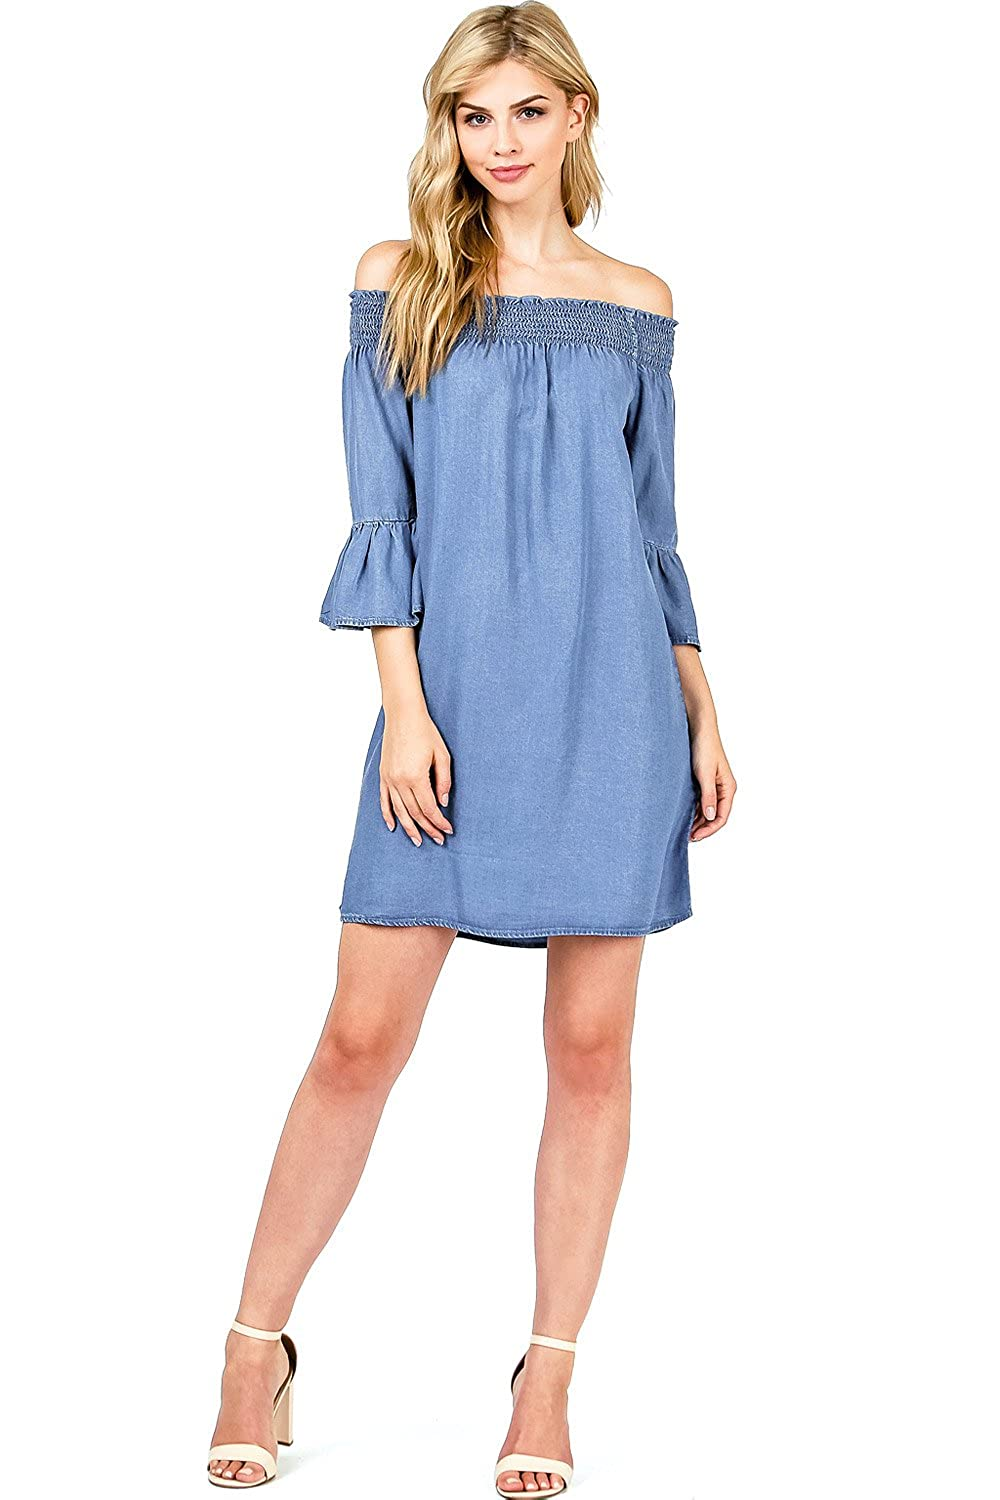 77e1ce3f0203 Chambray dress featuring a smocked off the shoulder neckline and trumpet  sleeves. Casual dress with a flirty flair